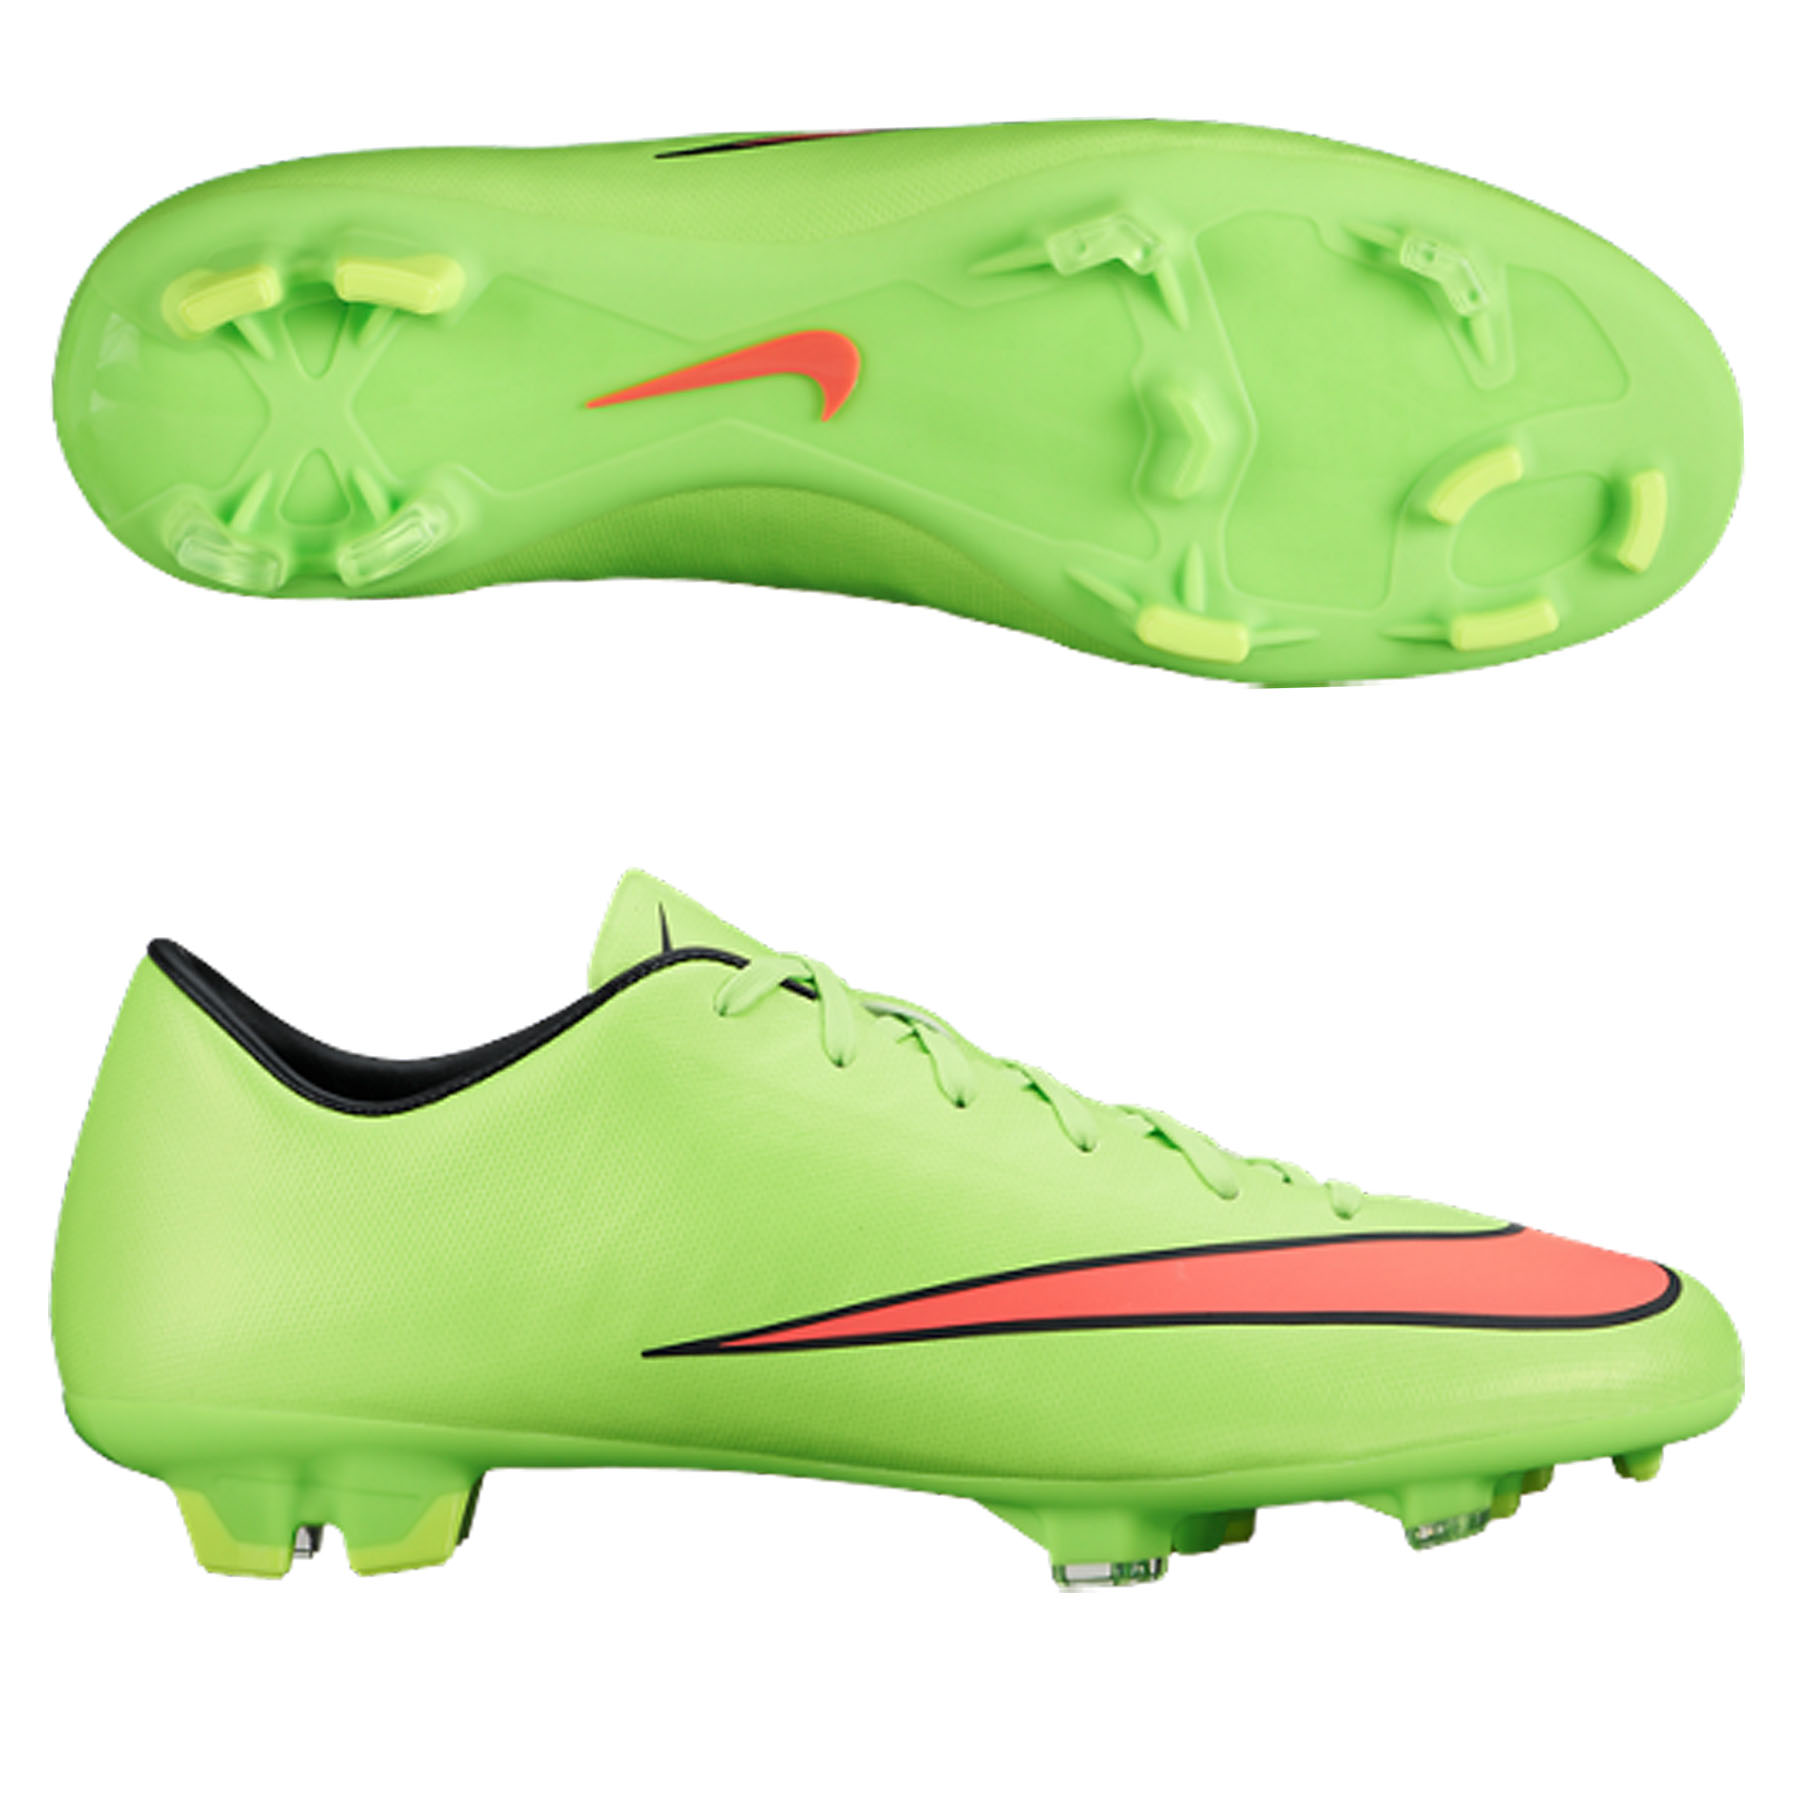 Nike Mercurial Victory V Firm Ground Football Boot - Kids Green